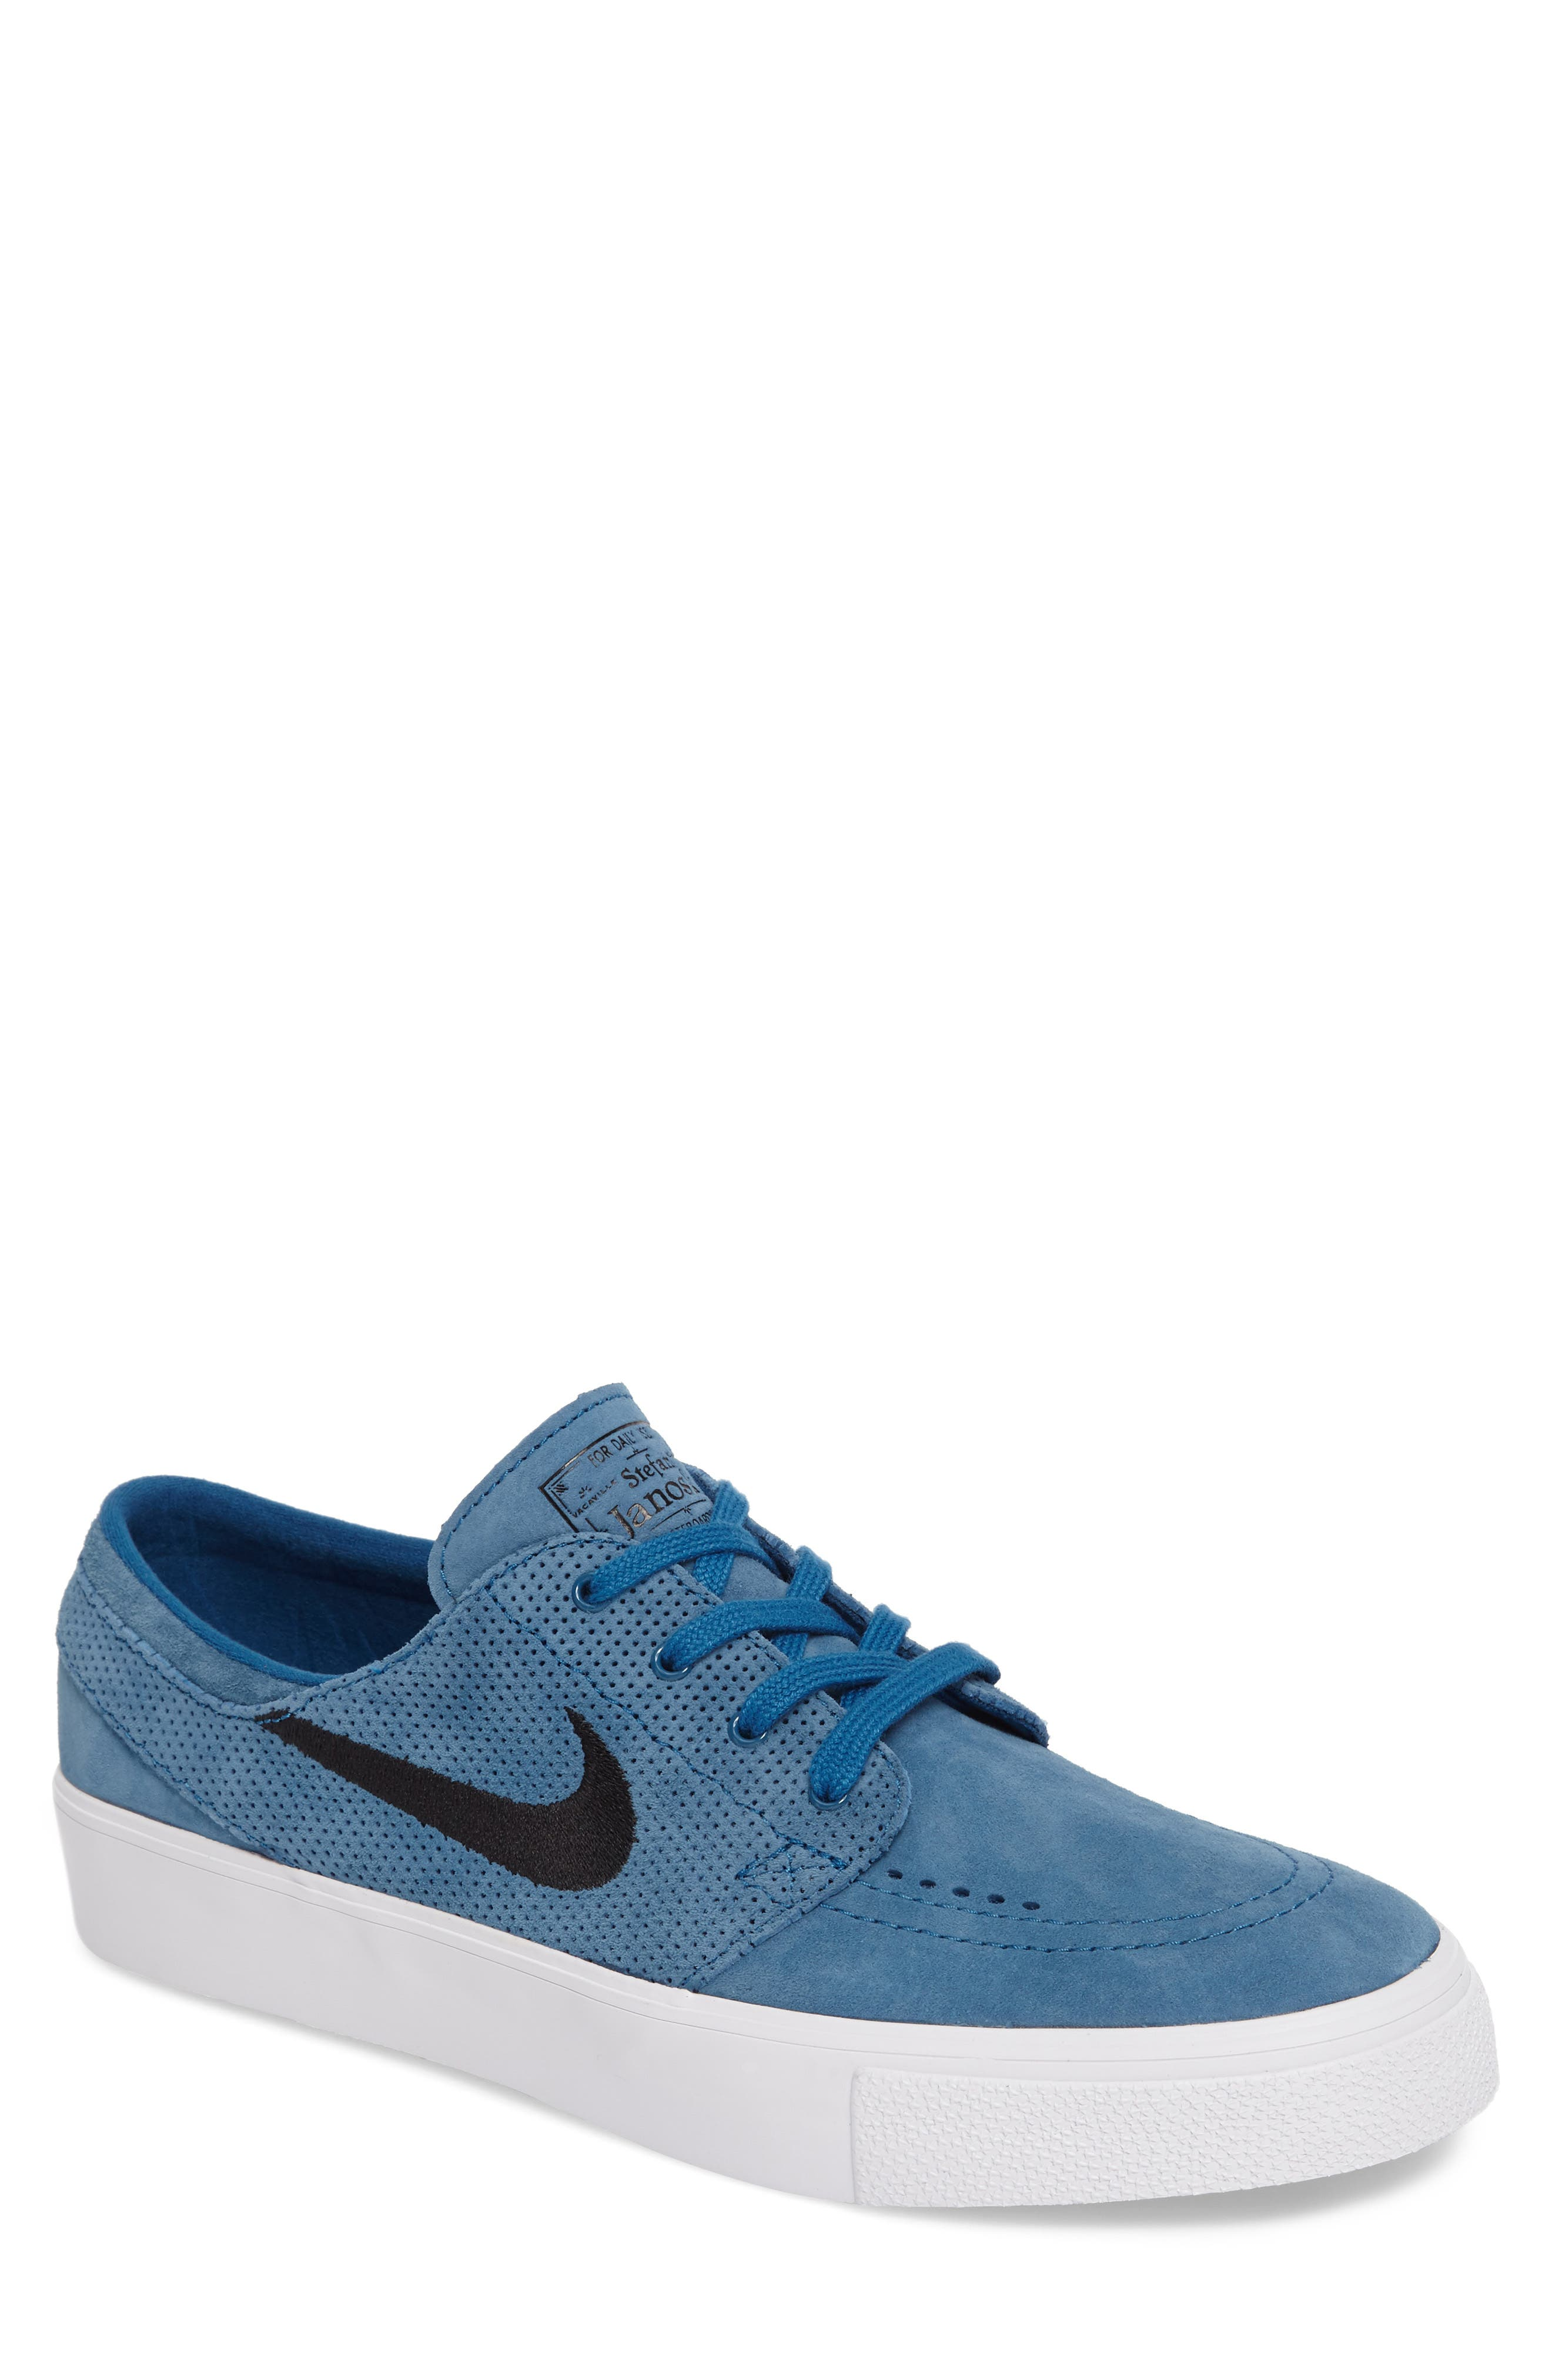 Zoom Stefan Janoski Premium Skate Sneaker,                             Main thumbnail 1, color,                             Industrial Blue/ Black